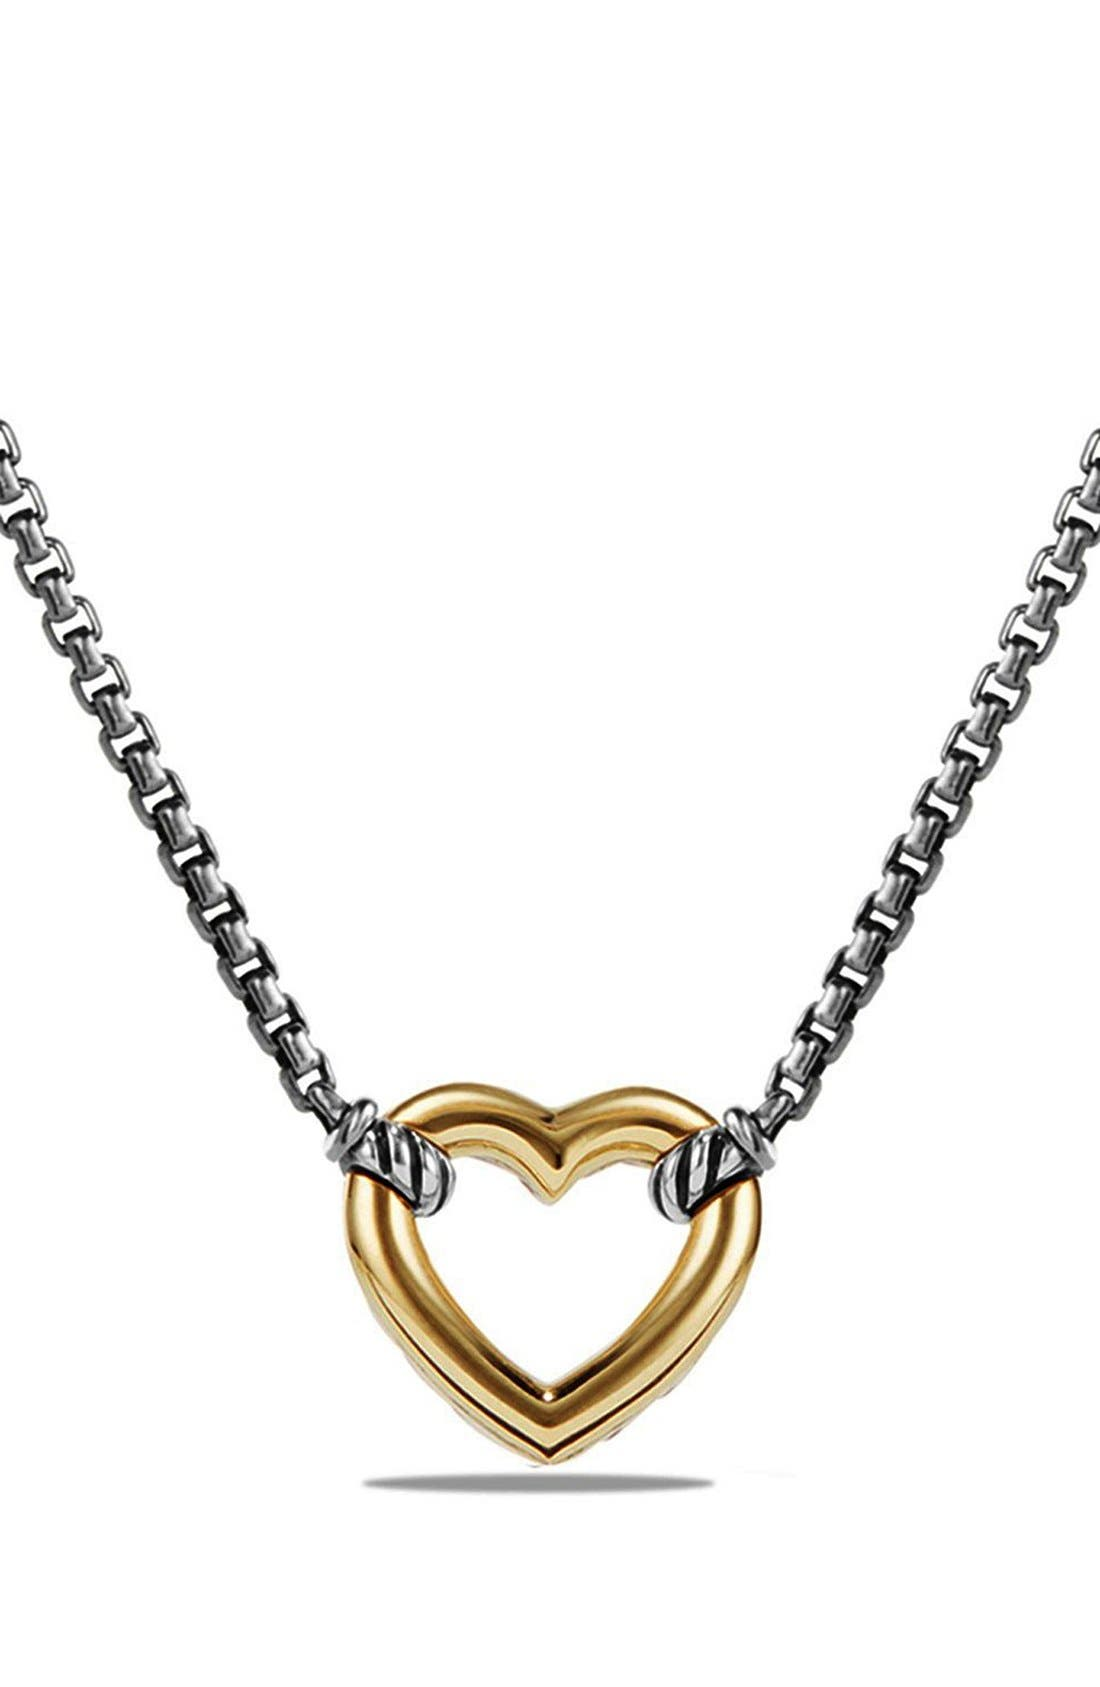 Main Image - David Yurman 'Cable Collectibles' Heart Station Necklace with 18K Gold